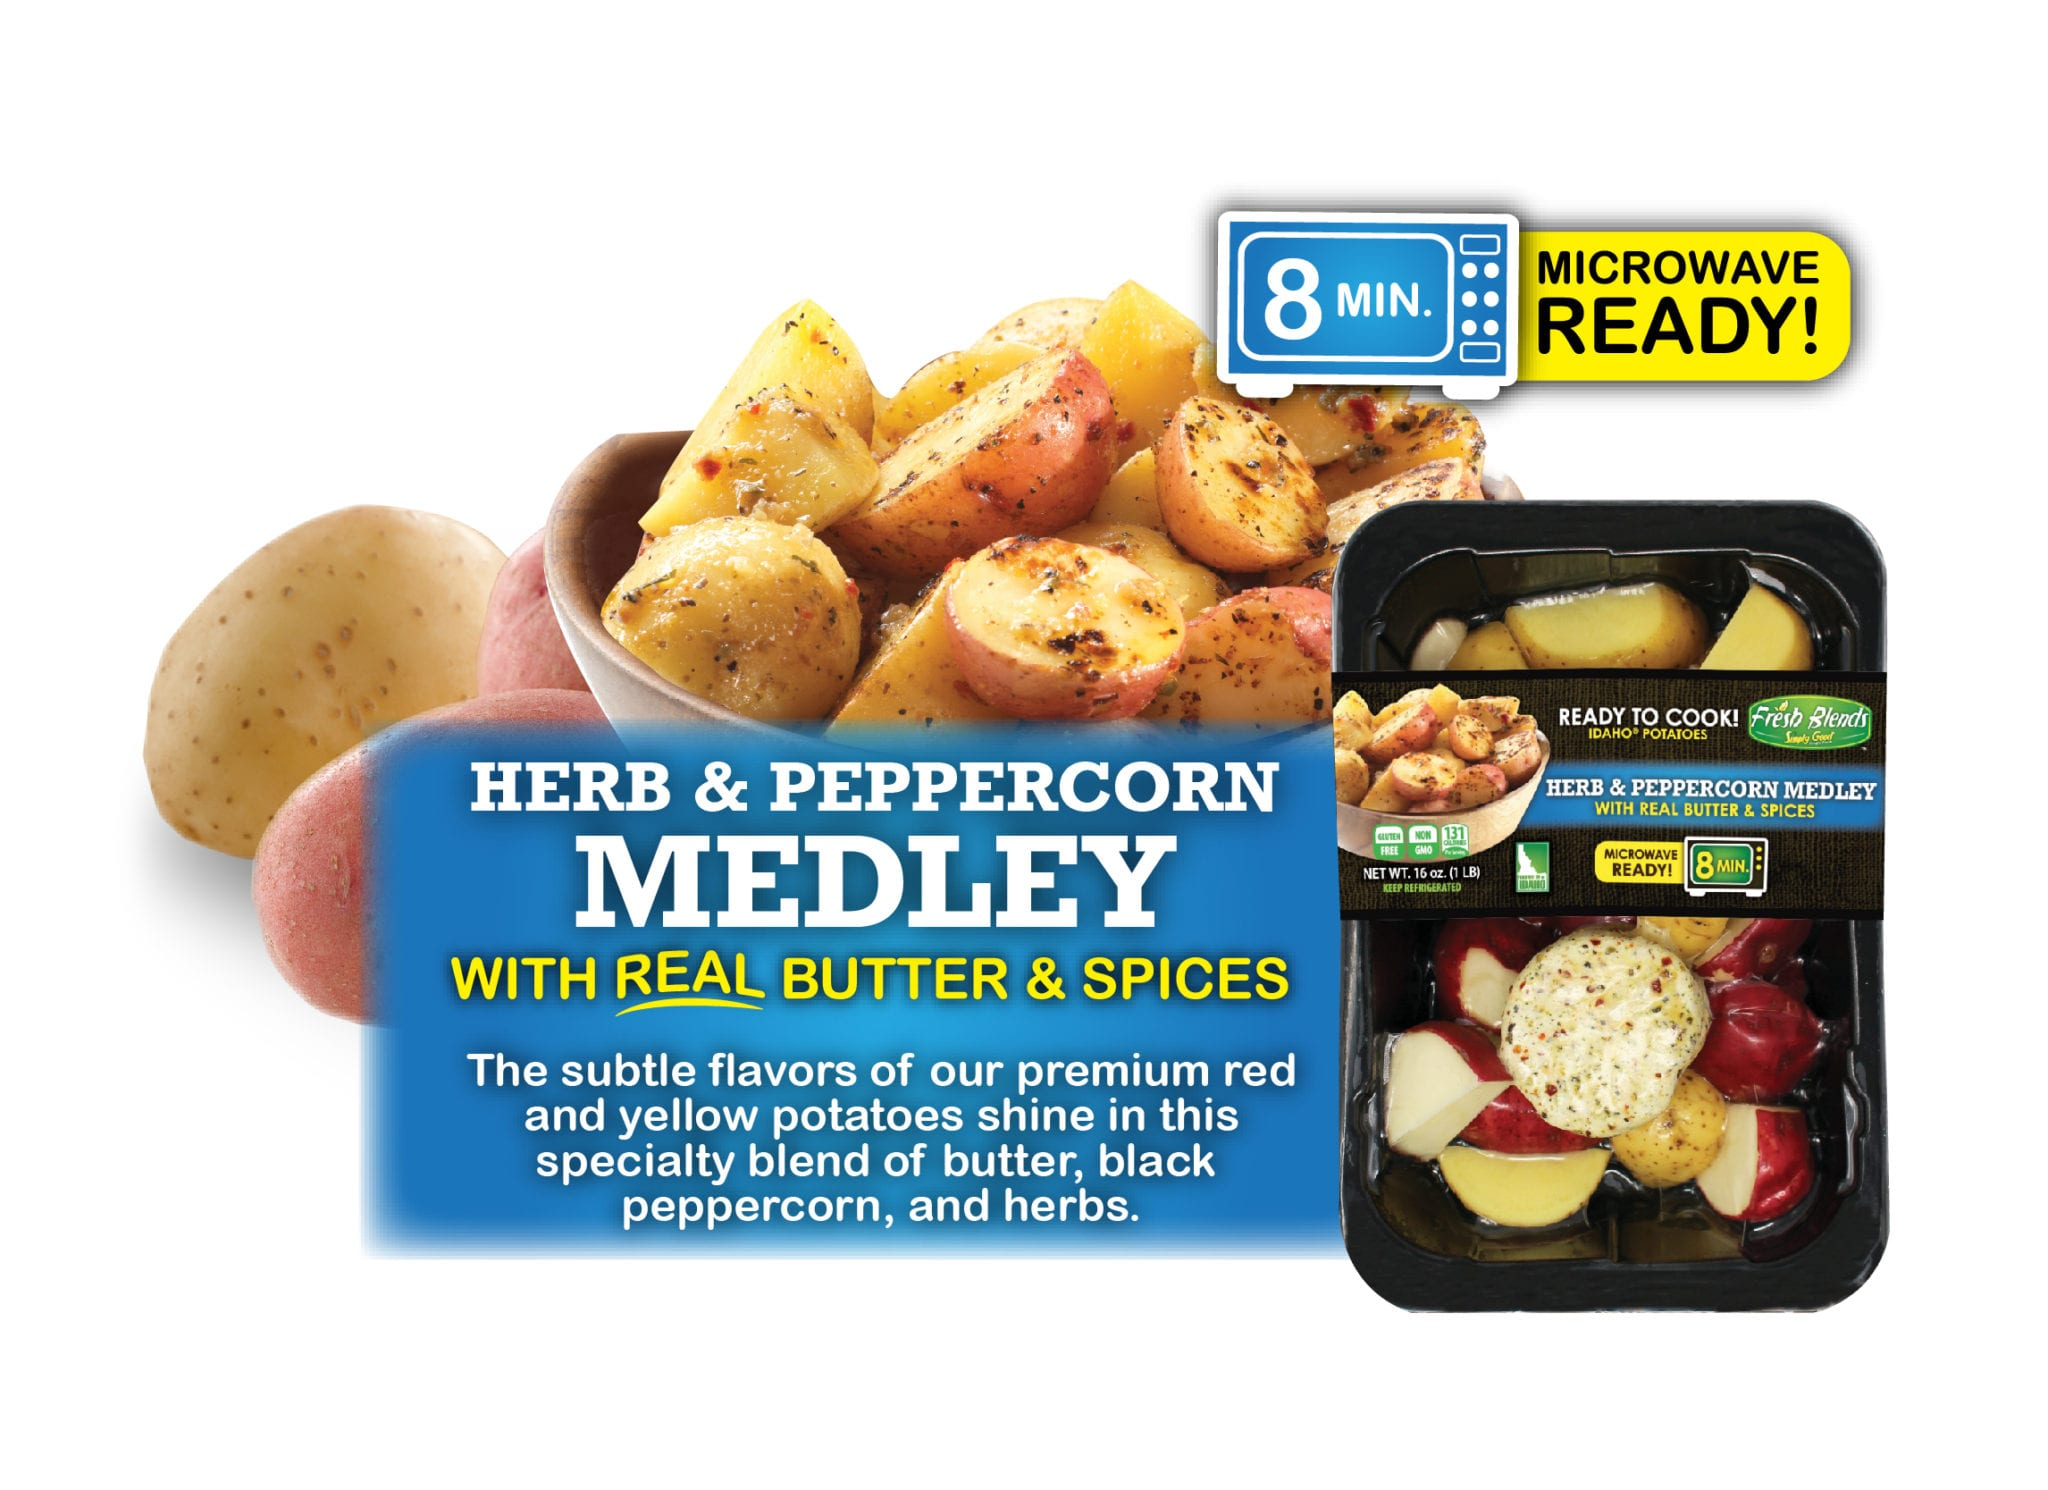 Eagle Eye Produce Fresh Blends Herb and Peppercorn Medley